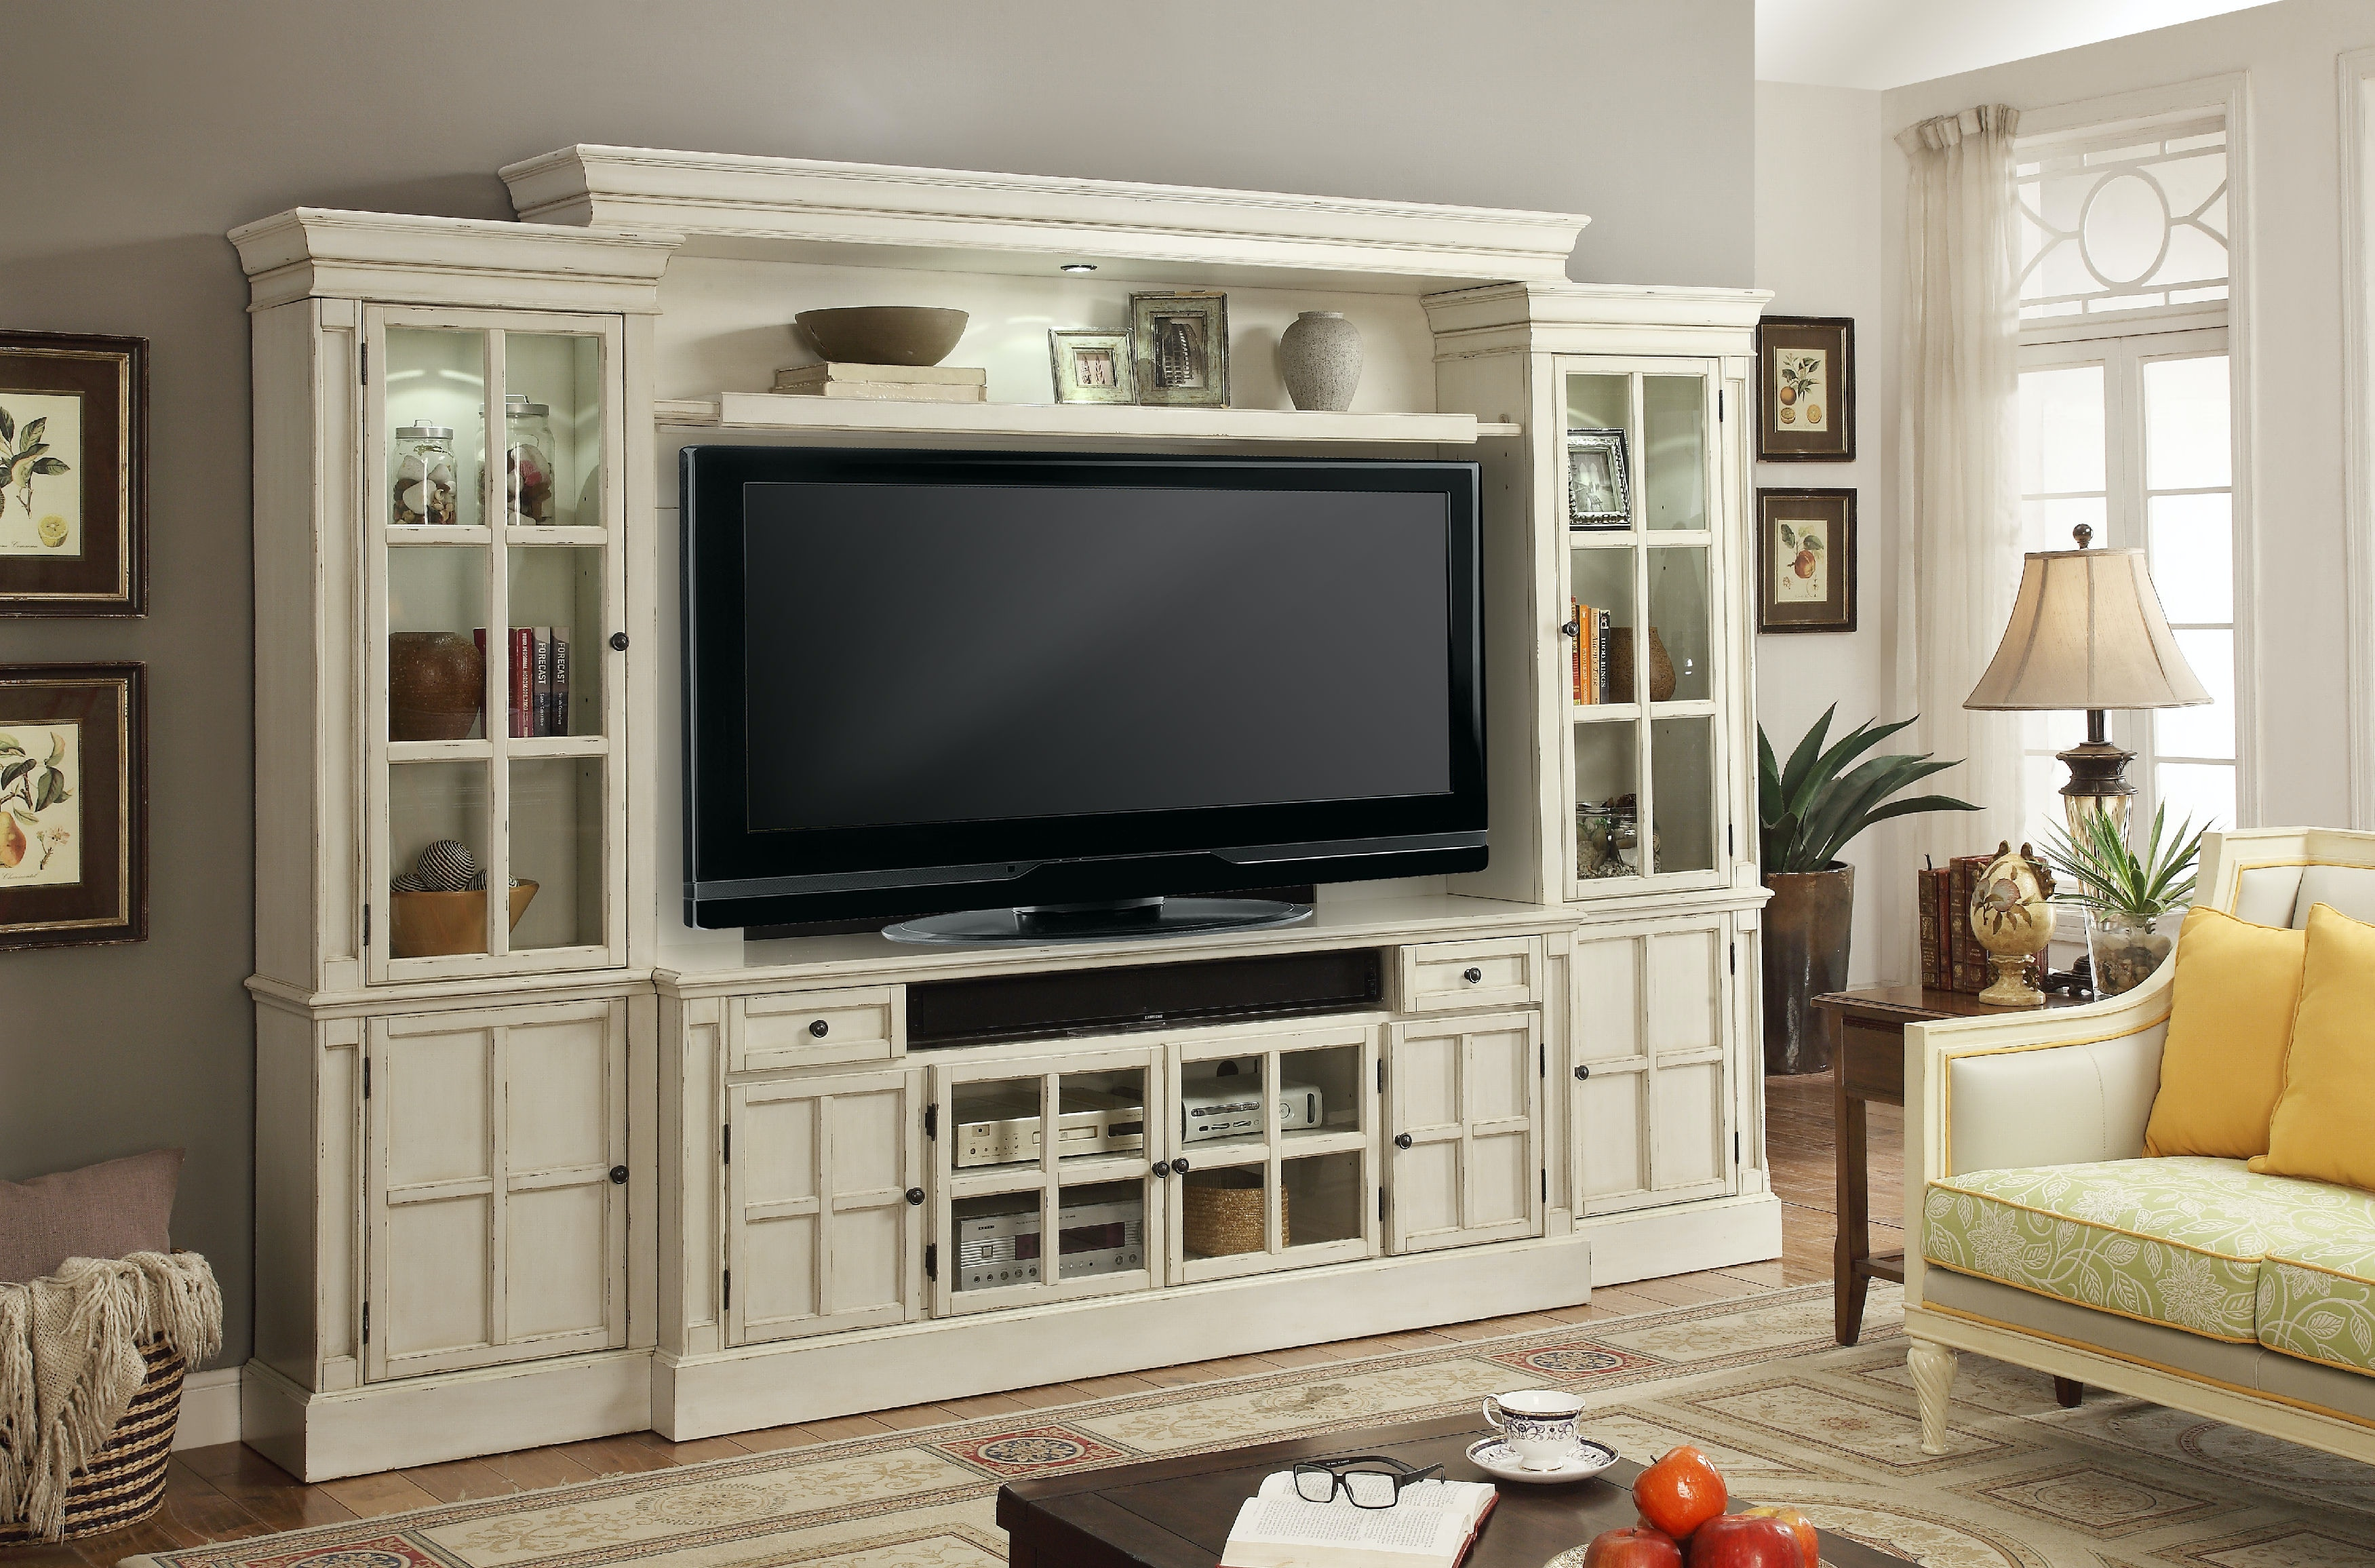 Charming Parker House 4 Piece 72 Inch Entertainment Wall CHA 172 4